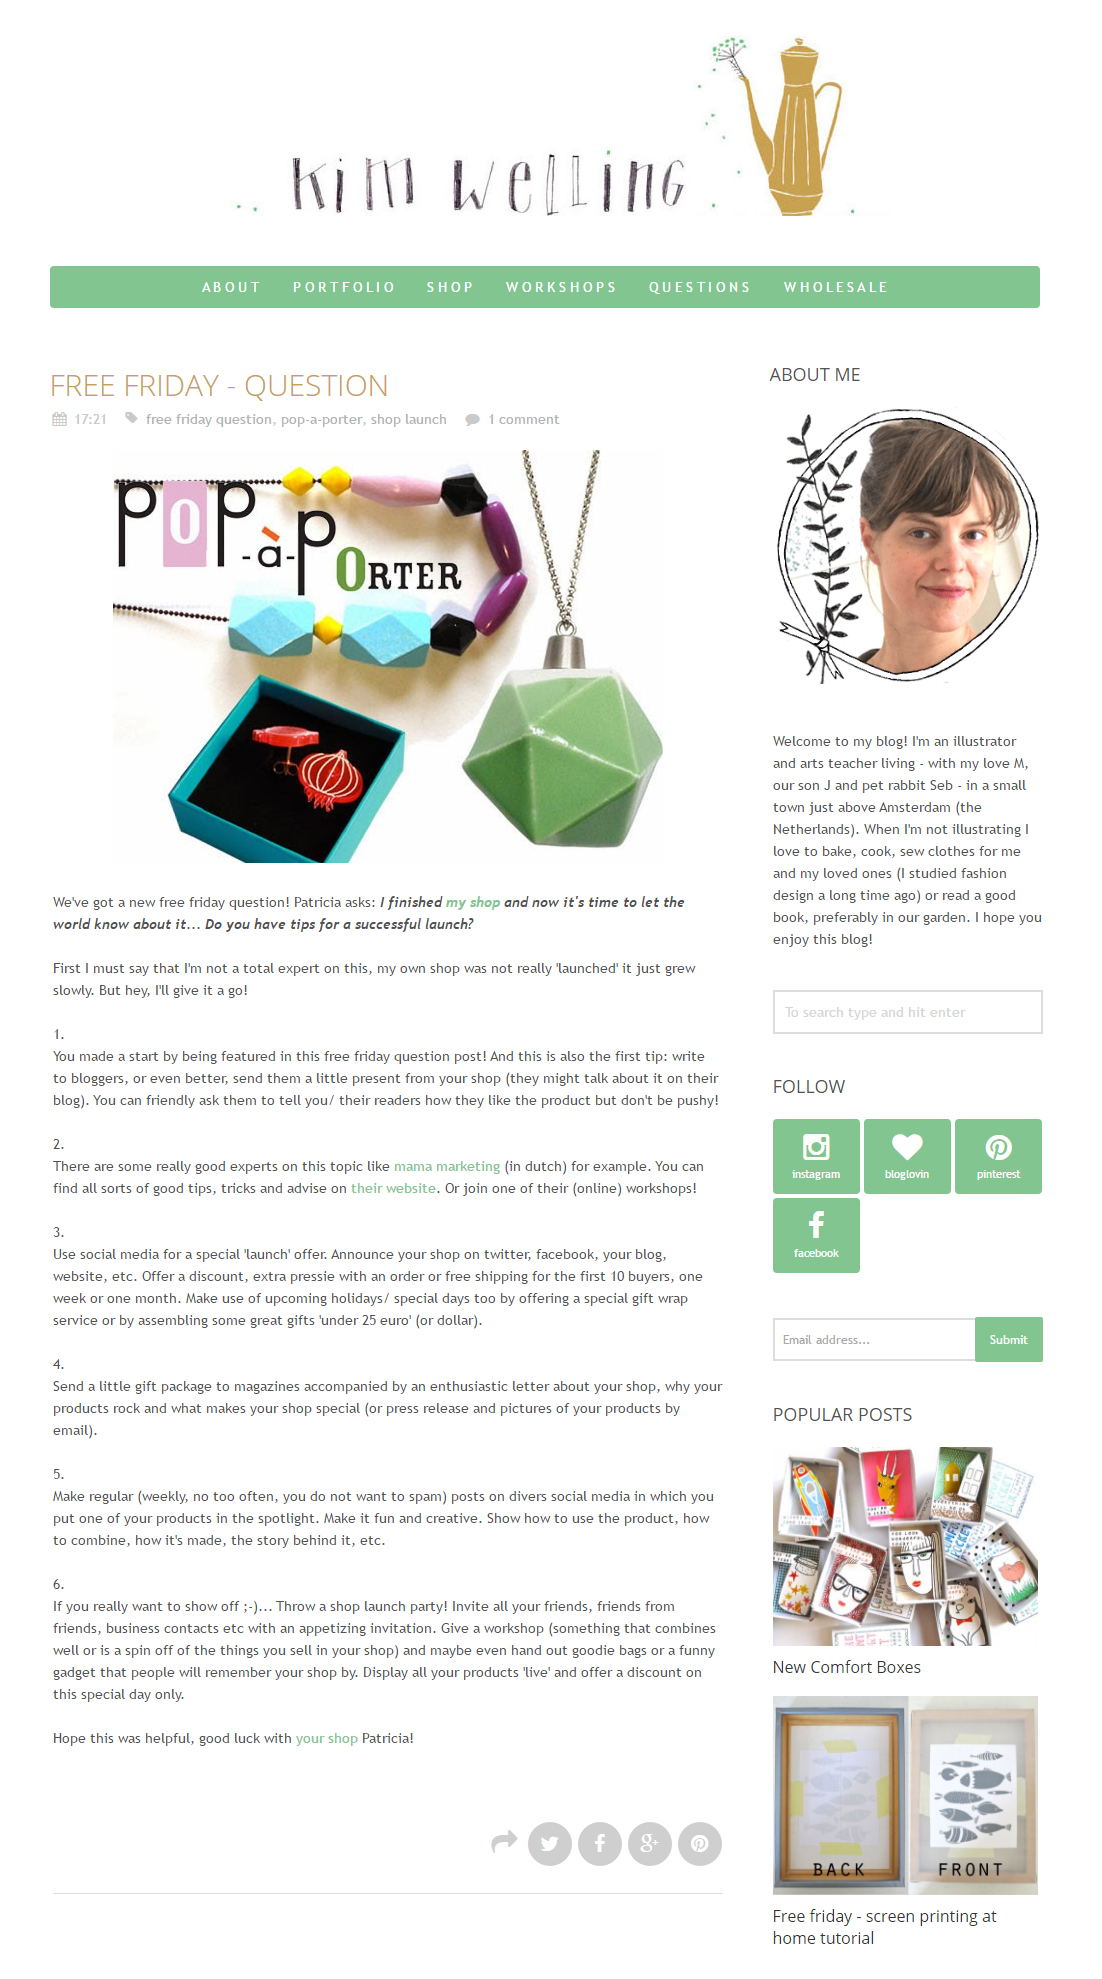 pop-a-porter's question ansered on Kim Welling's blog